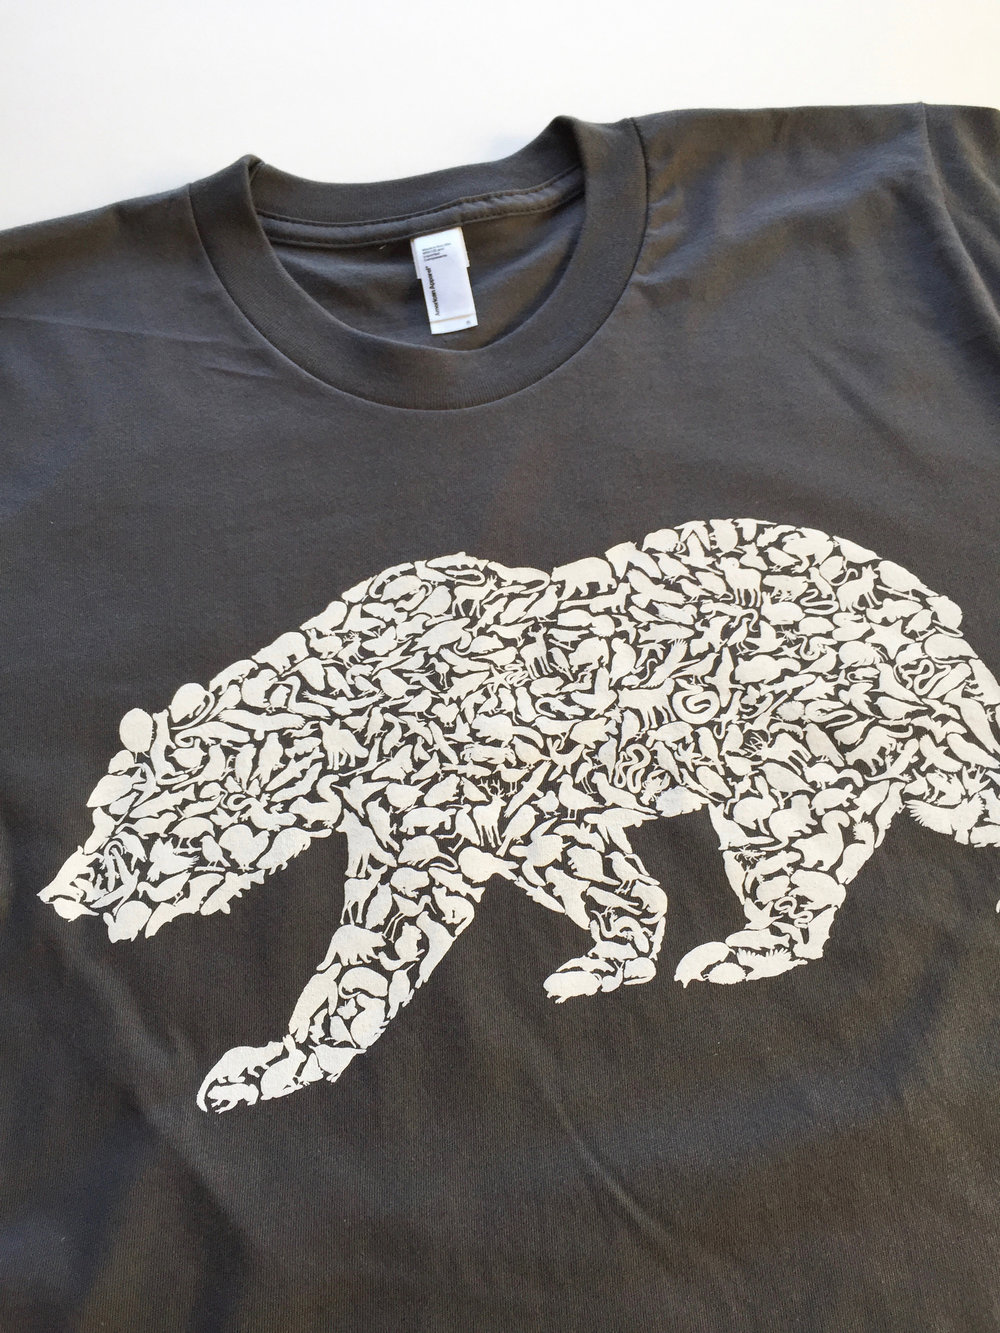 Grizzly Bear T-shirt.jpg